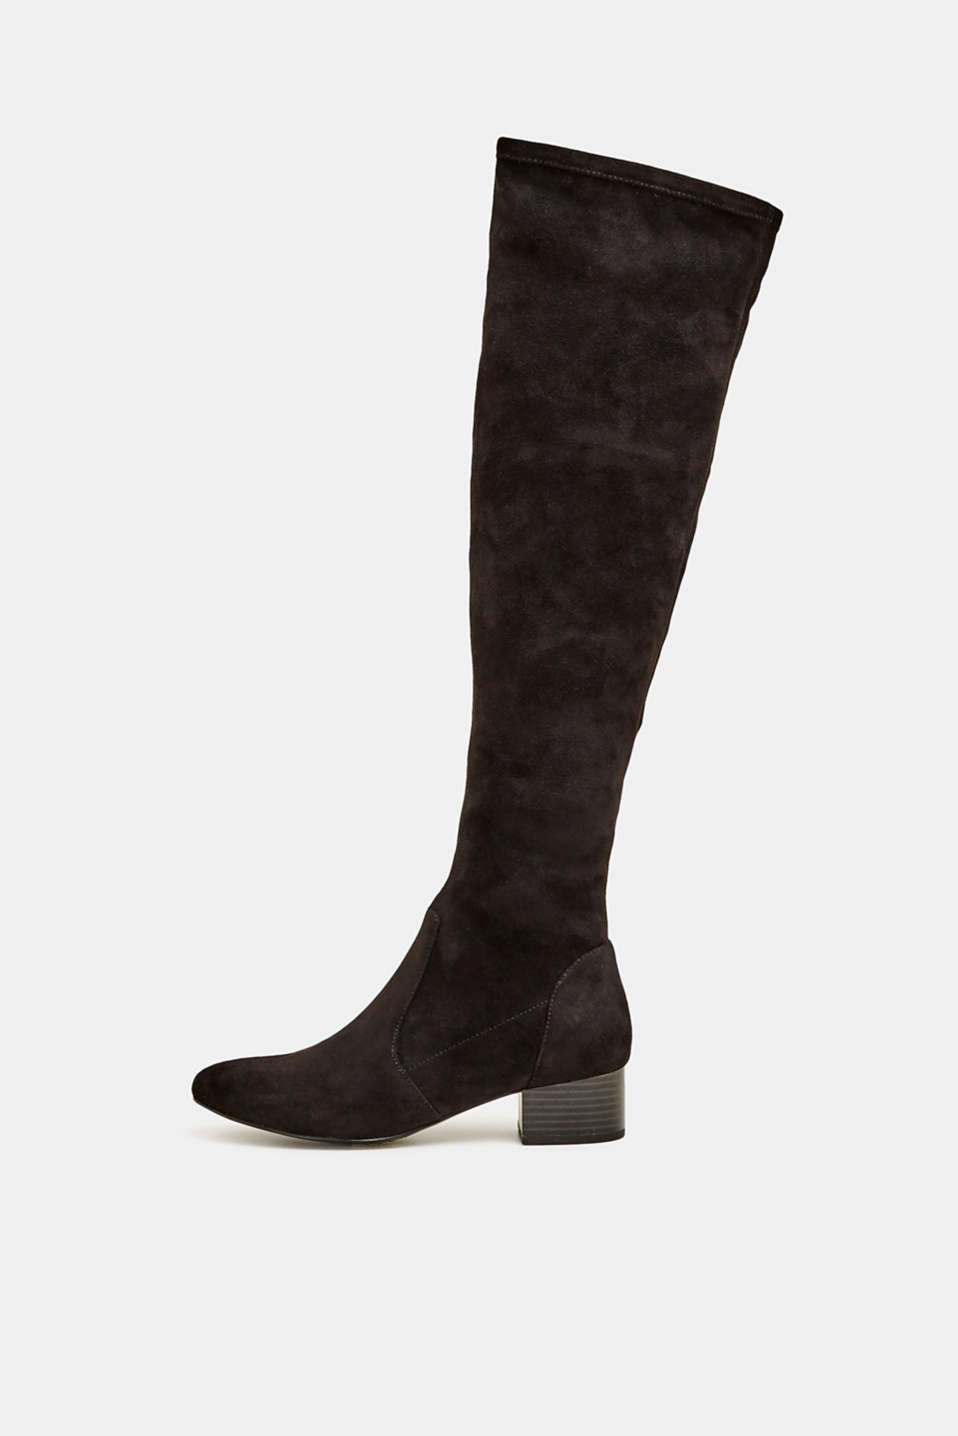 Esprit - Over-the-knee boots in faux suede